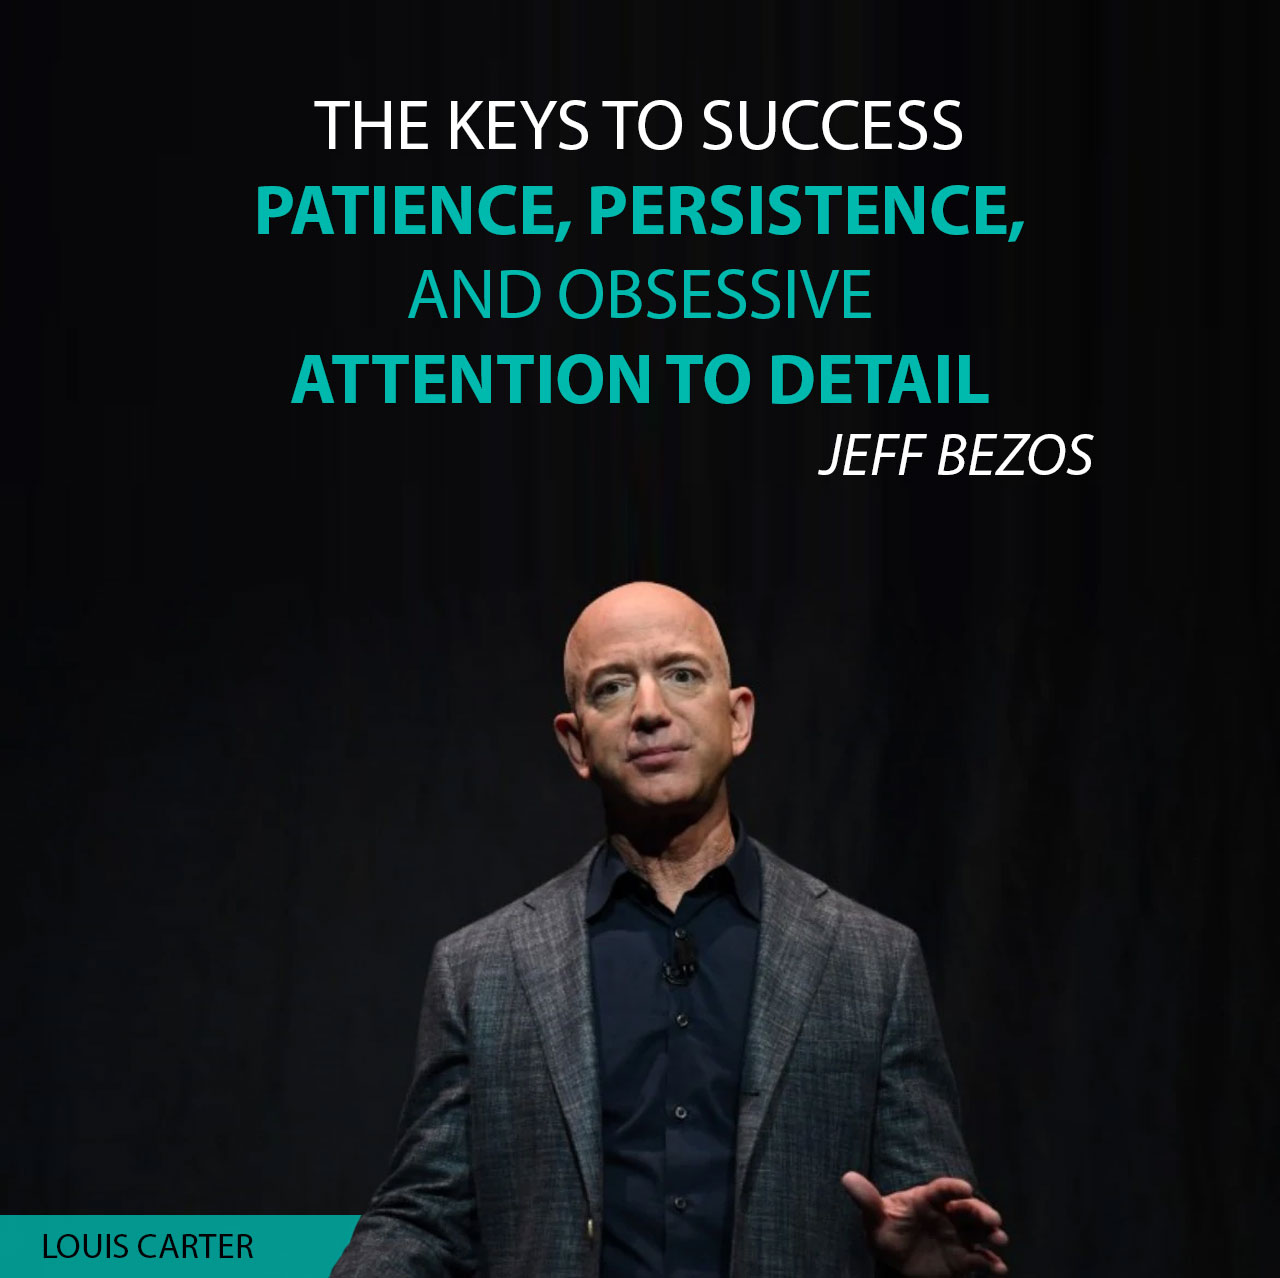 The keys to success are patience, persistence, and obsessive attention to detail